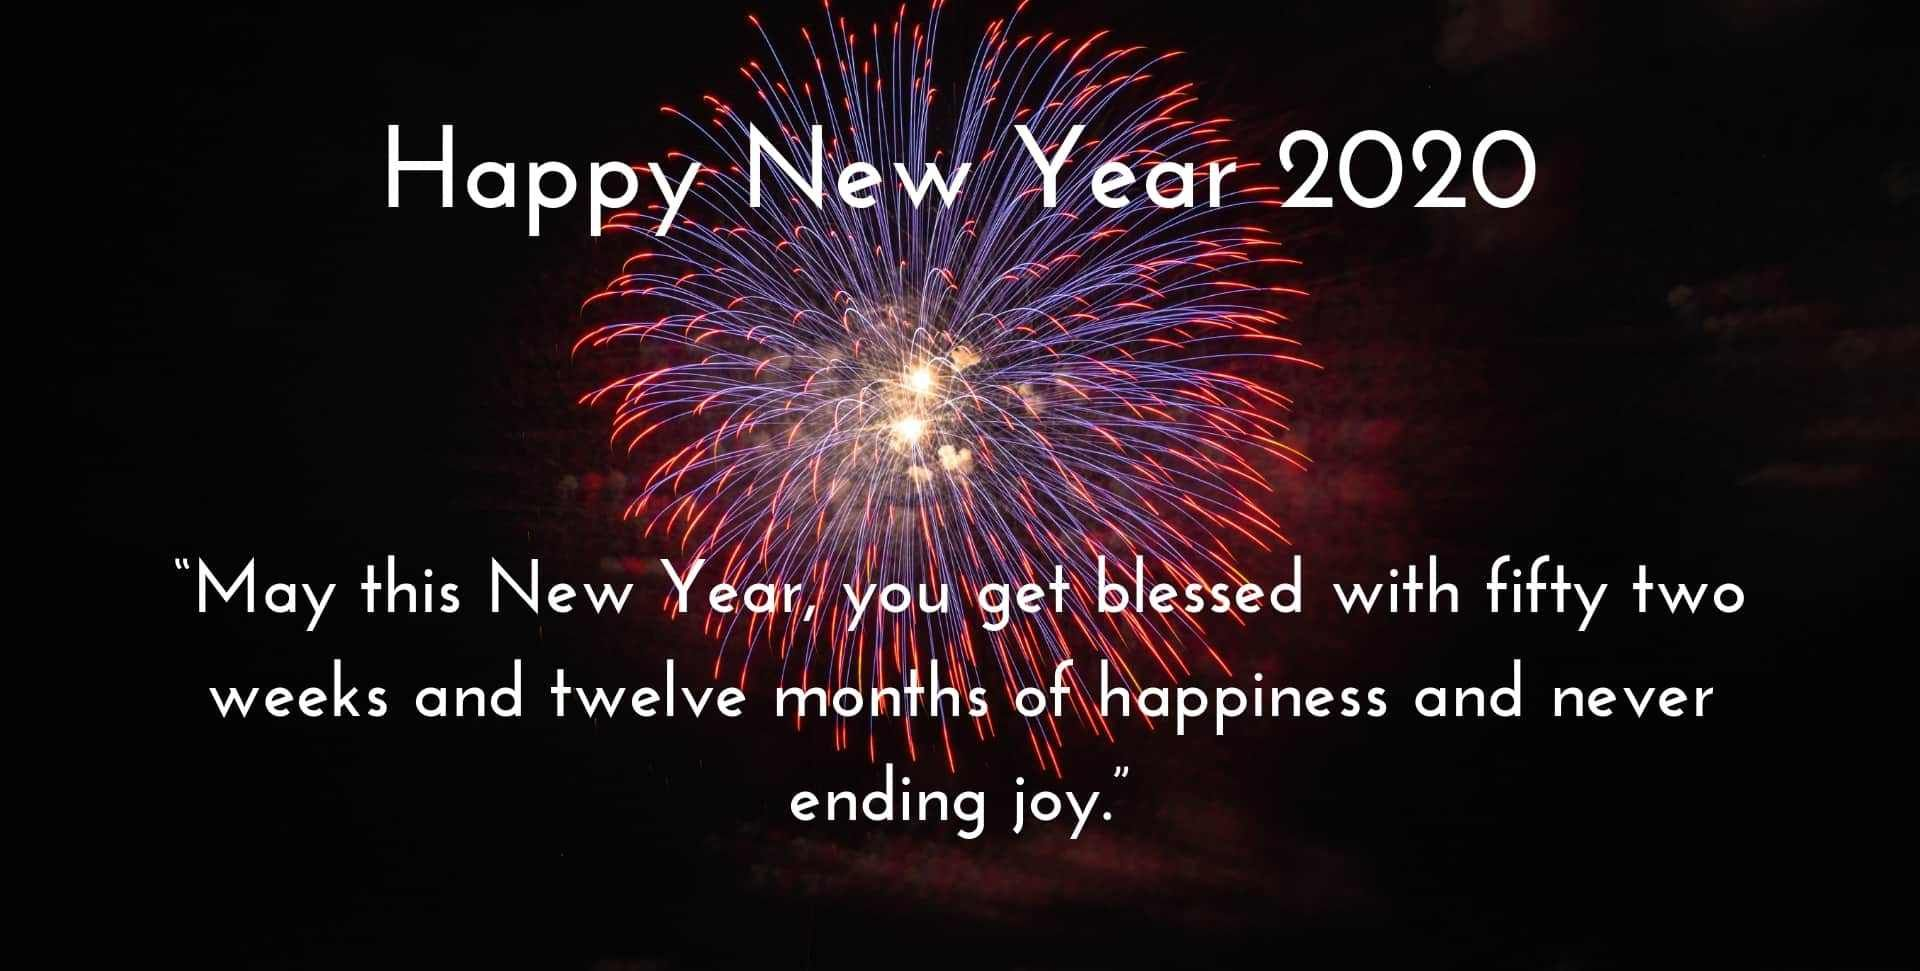 Happy New Year Cousin Images New Year Images Happy New Year Wishes Happy New Year Images